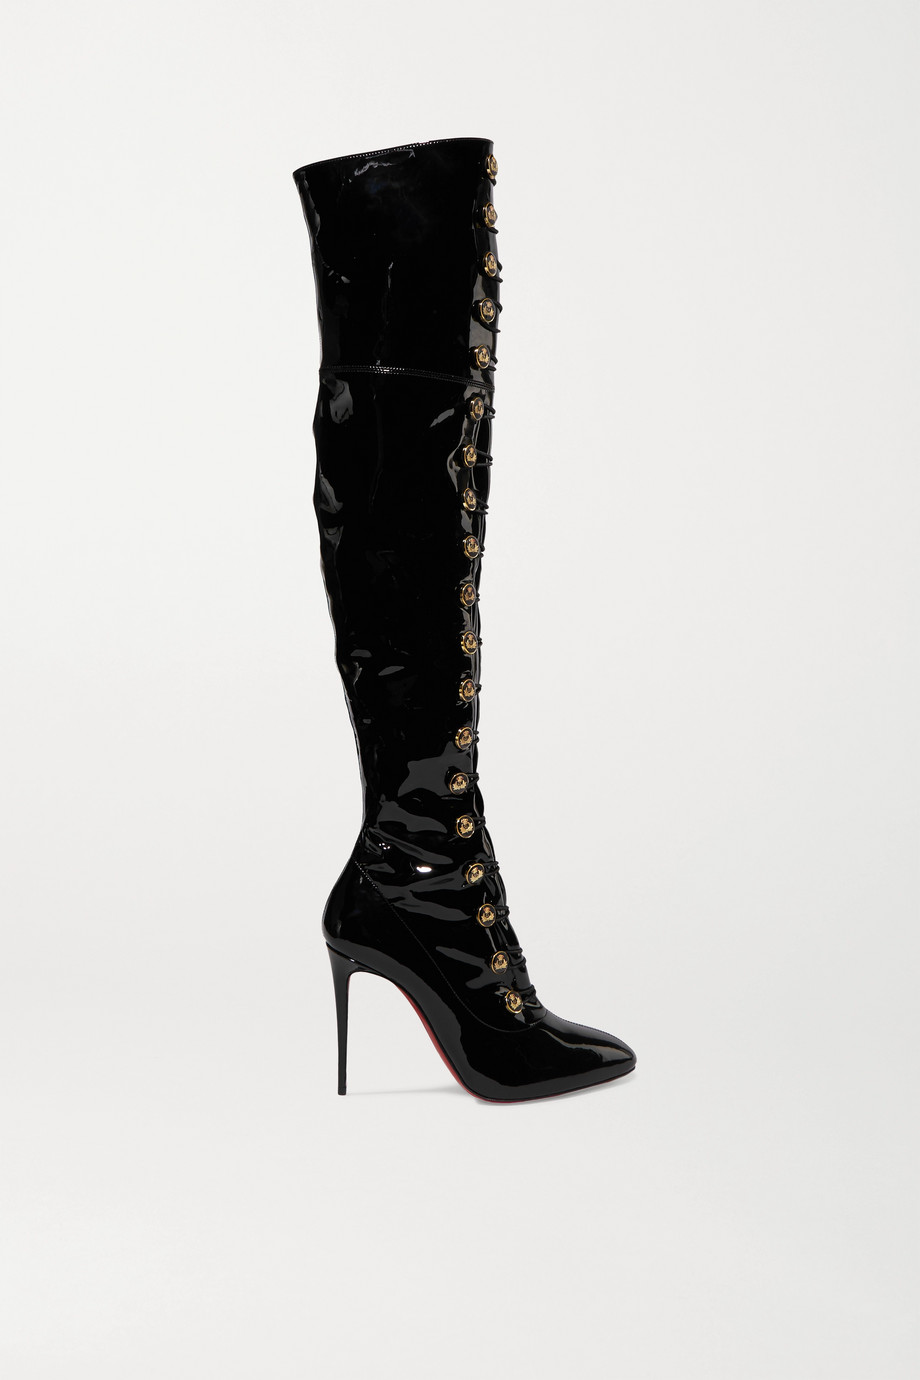 Christian Louboutin Frenchissima Alta 100 patent-leather over-the-knee boots